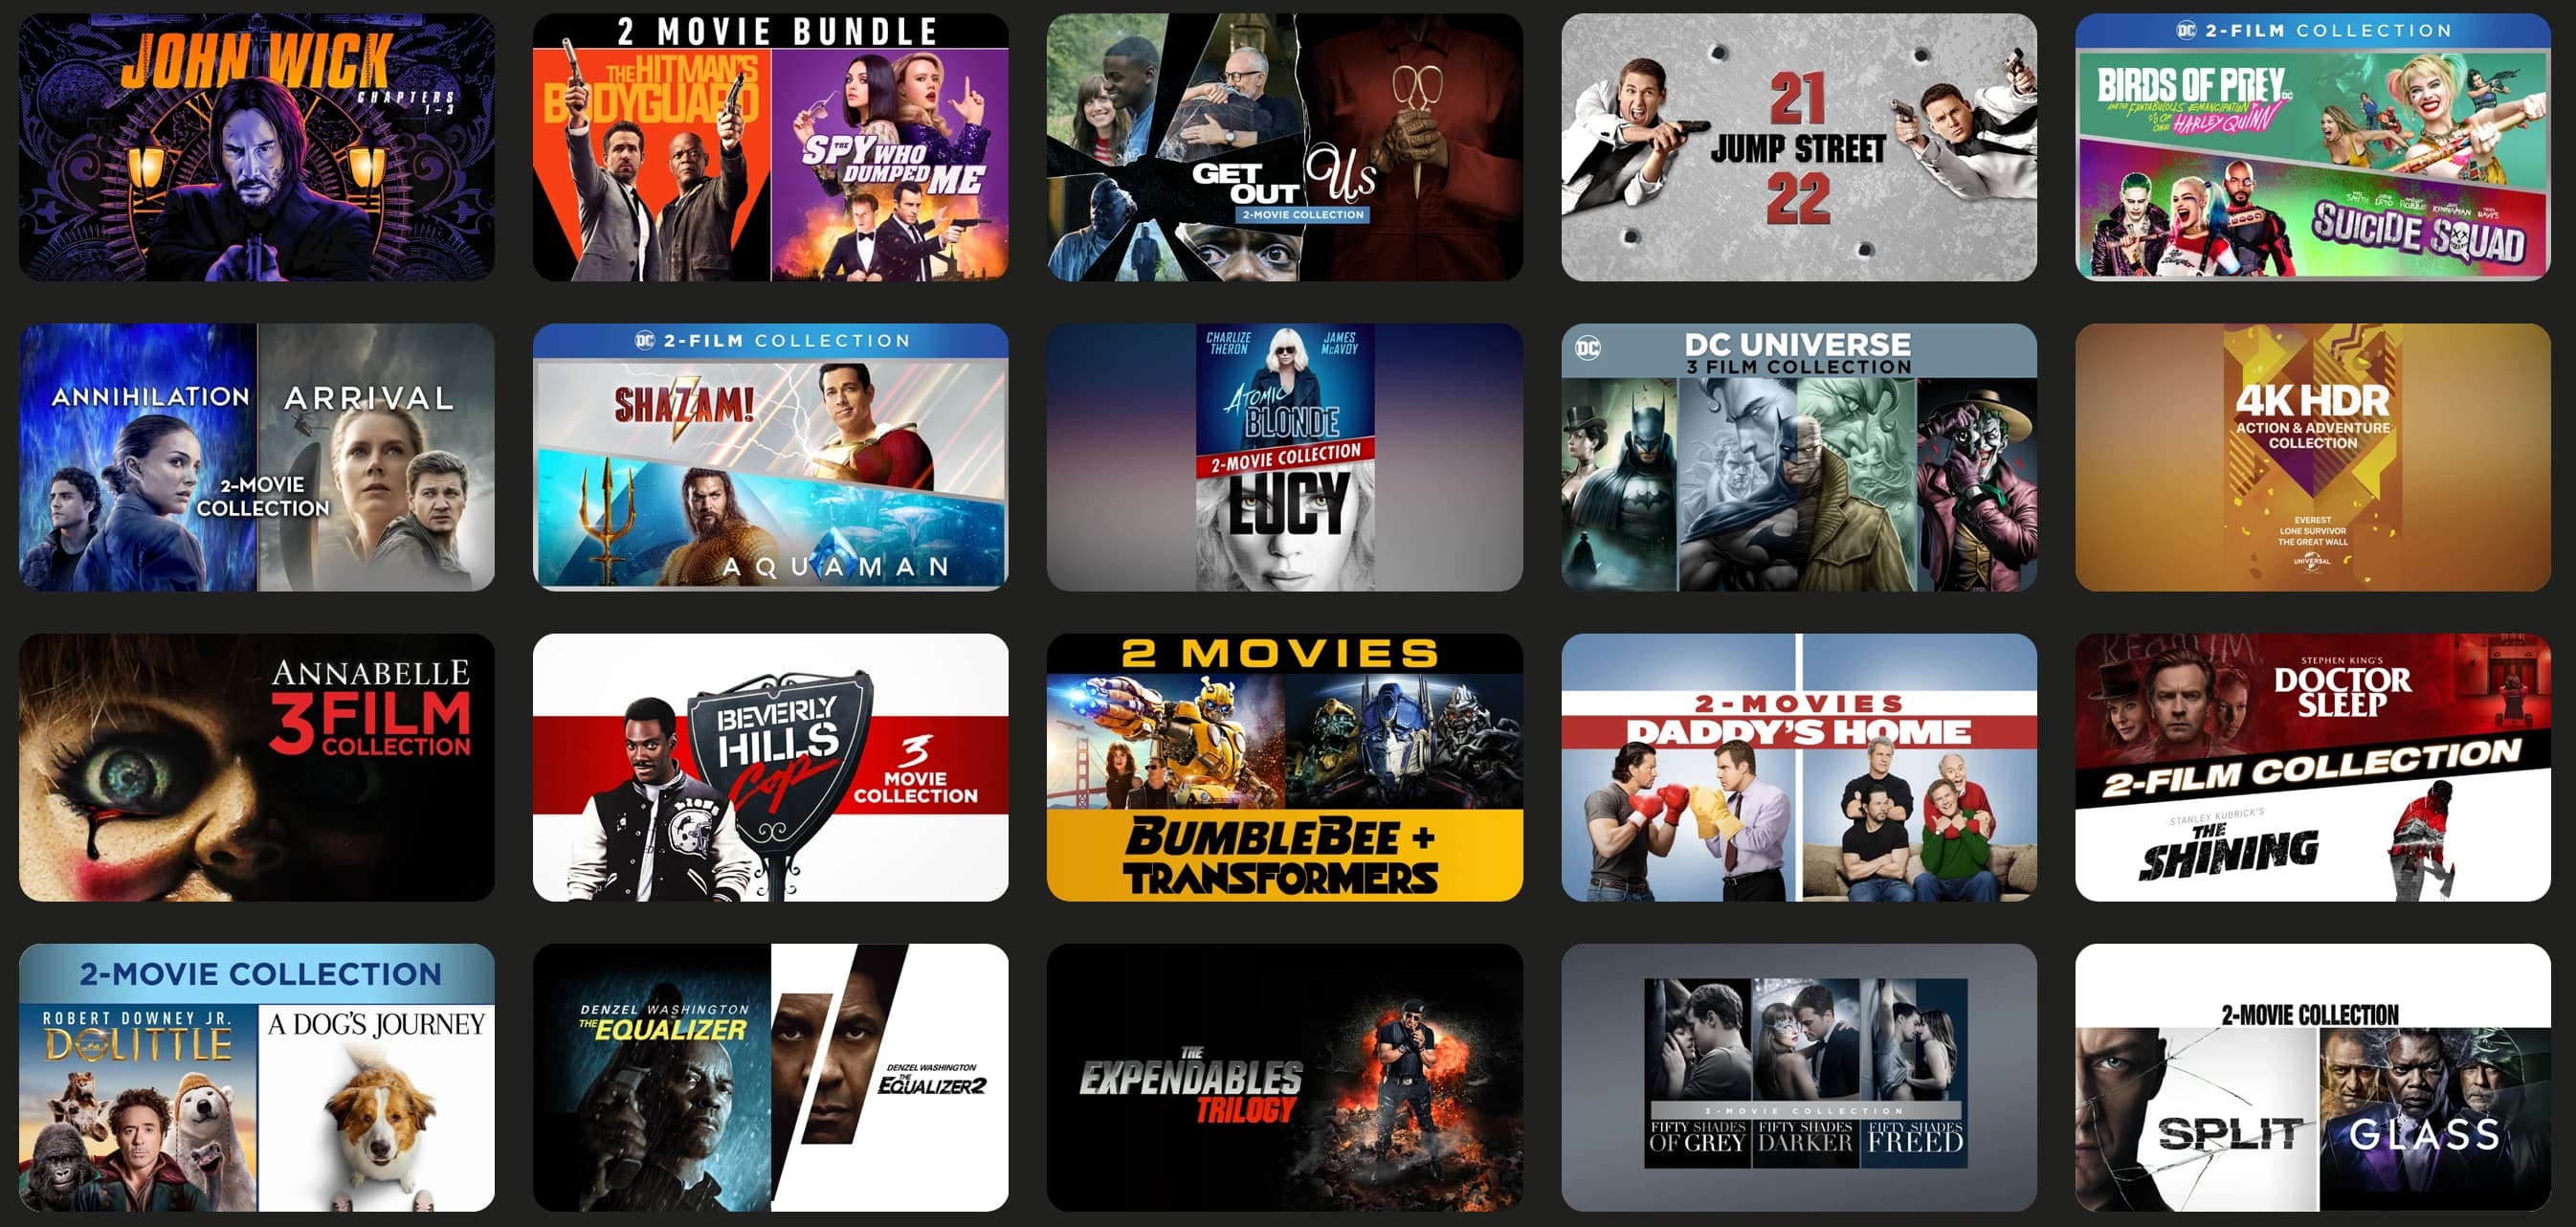 4K bundles start at just $10 and more of this week's iTunes movie deals